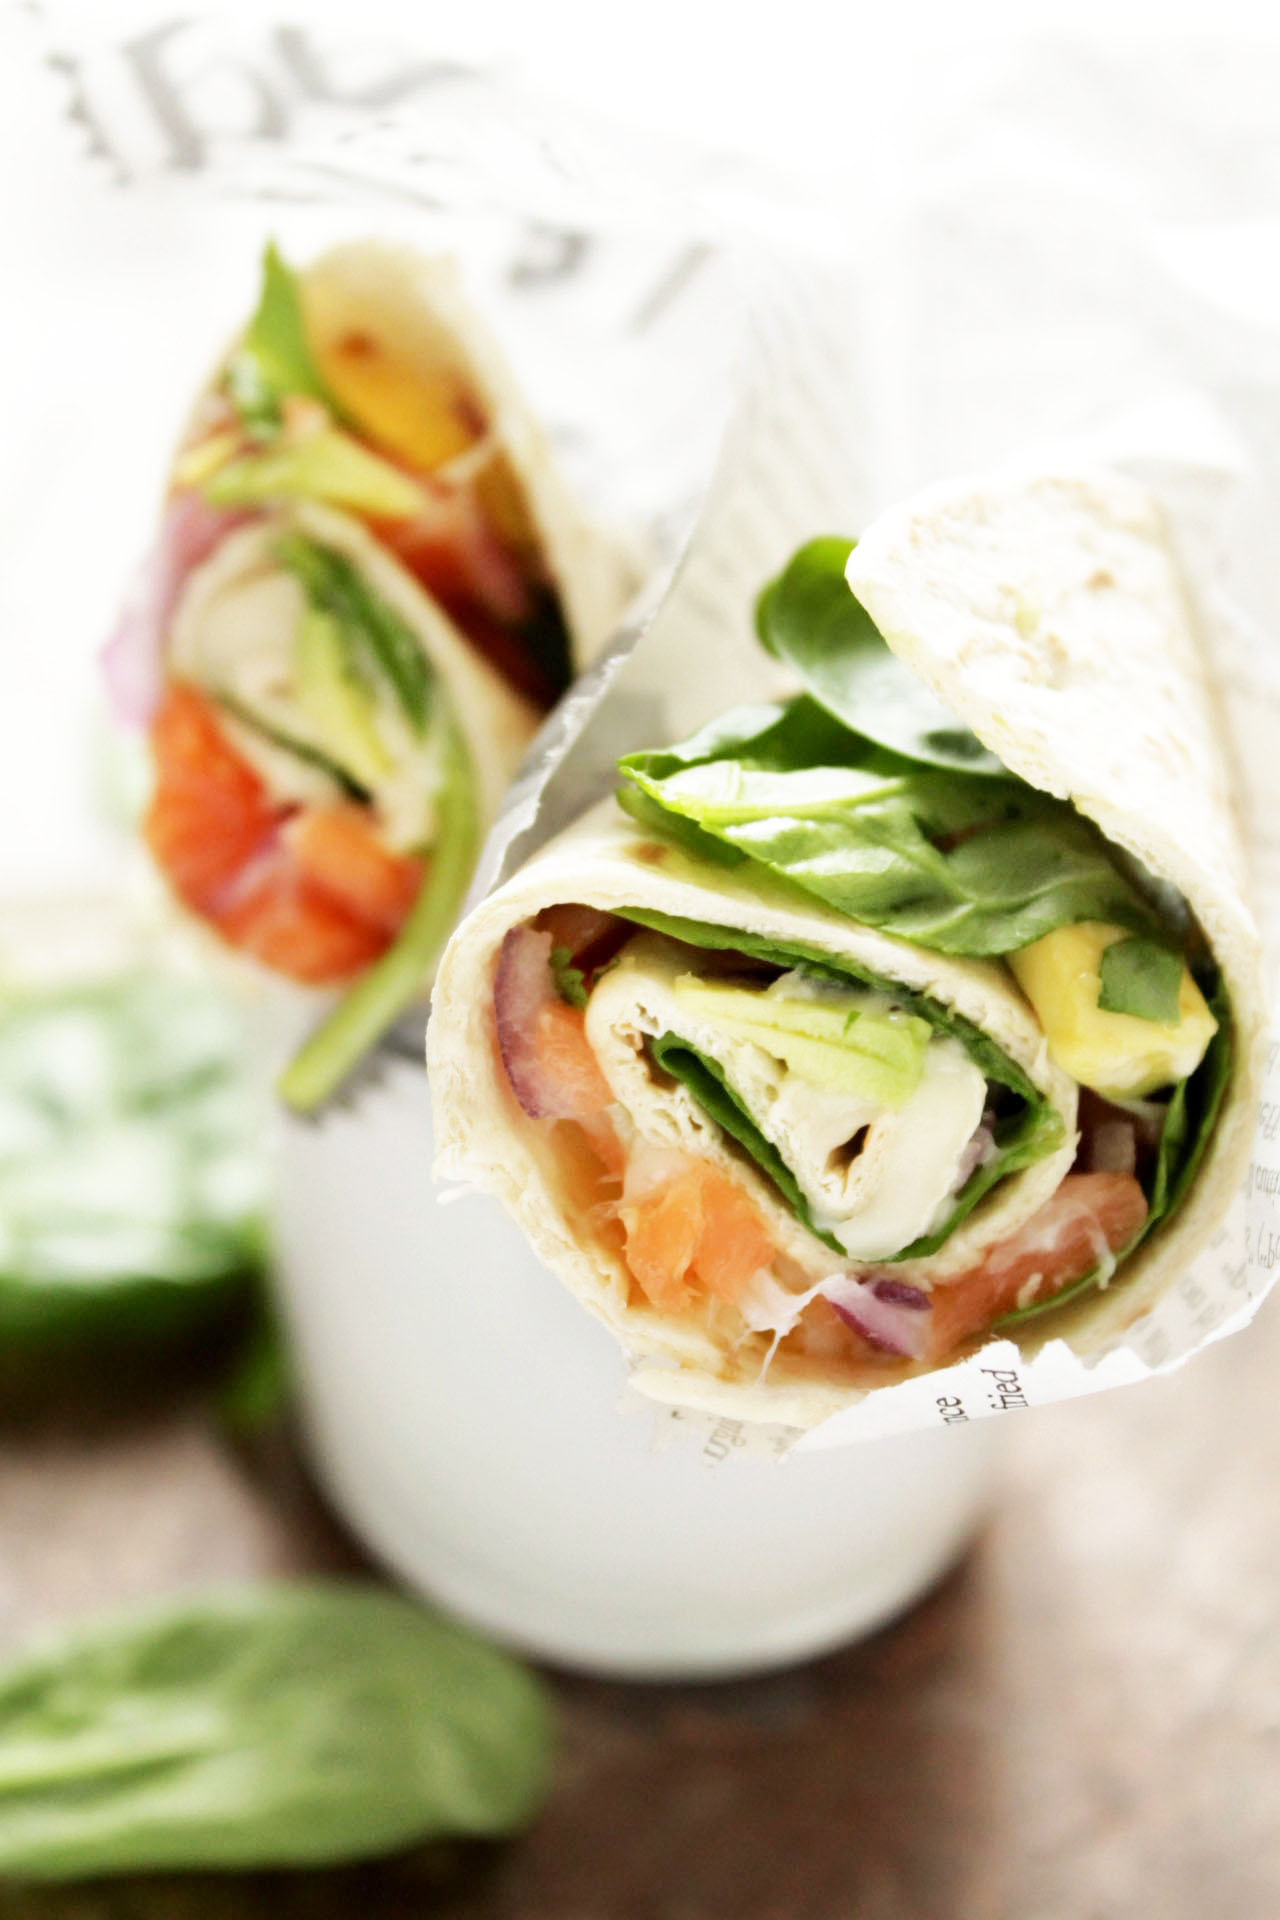 Brie, salmon and avocado wrap style